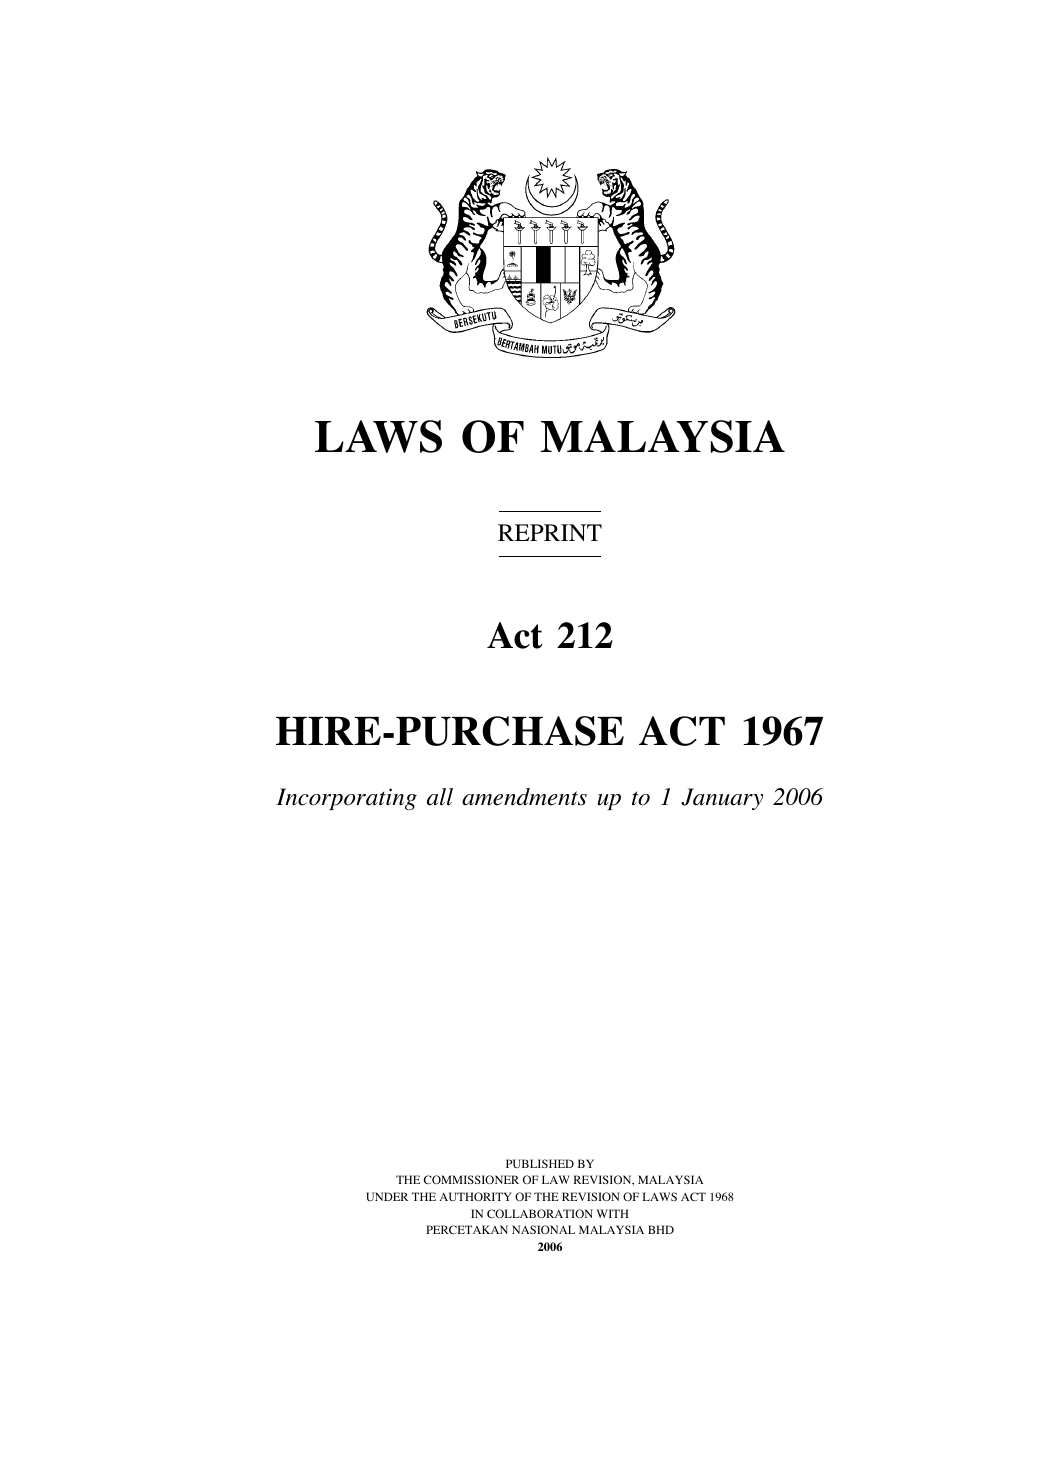 act 212 hire purchase act 1967 Section 16(4) of hire purchase act 1967 • serves a document acknowledging the receipt of the goods section 17 of hire purchase act 1967 • after repossession, the owner must not sell or dispose of the goods for 21 days.